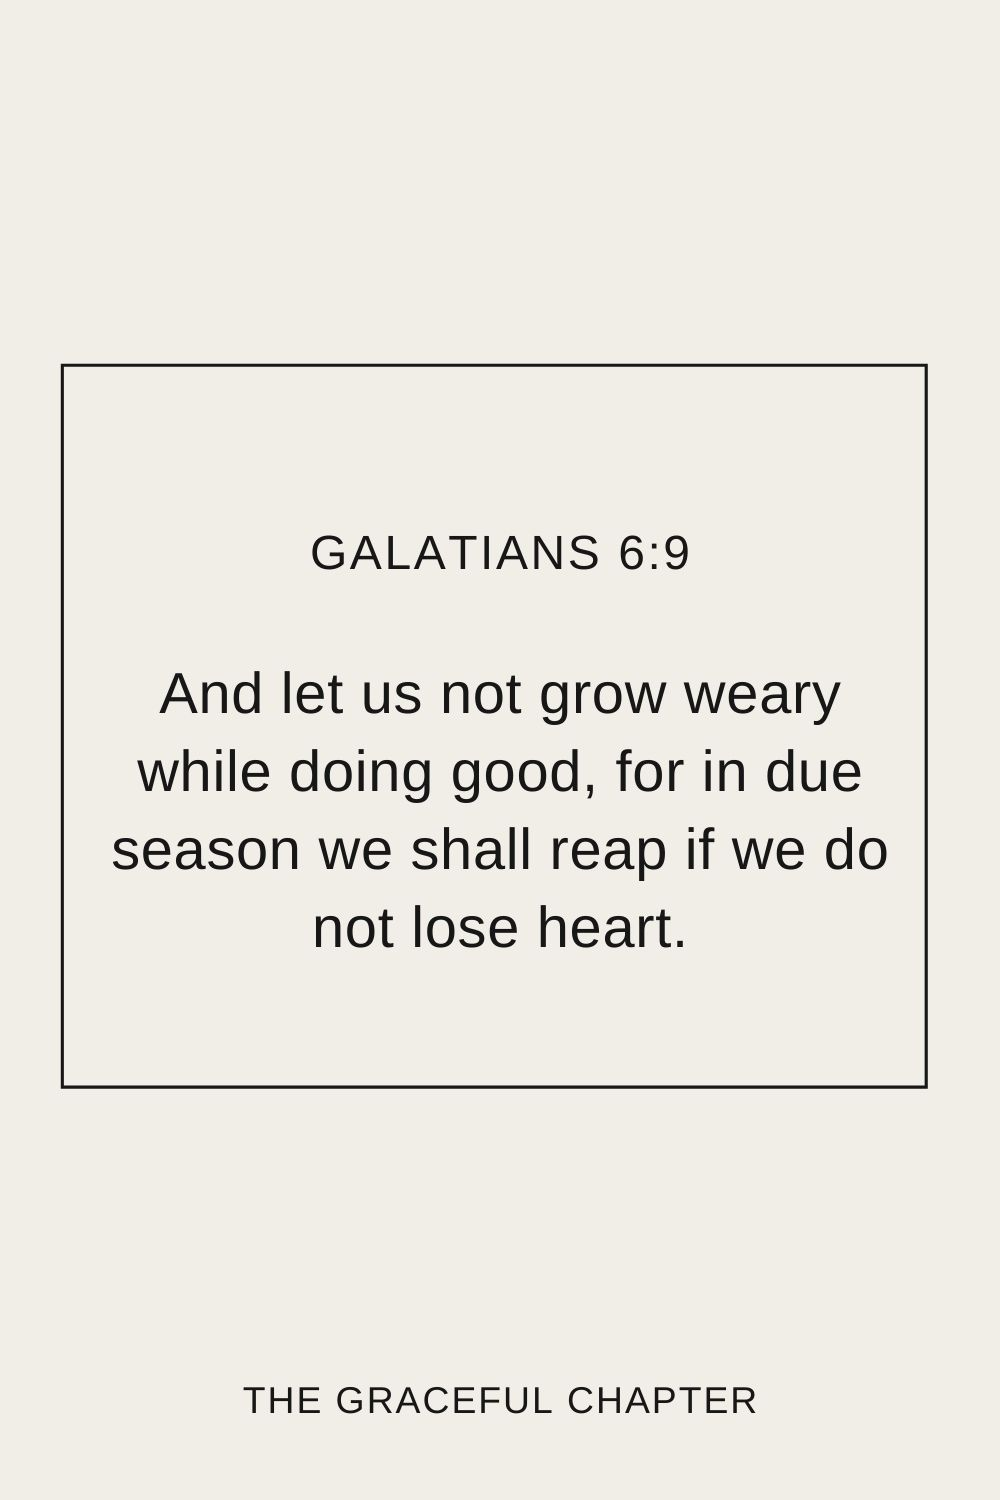 And let us not grow weary while doing good, for in due season we shall reap if we do not lose heart. Galatians 6:9